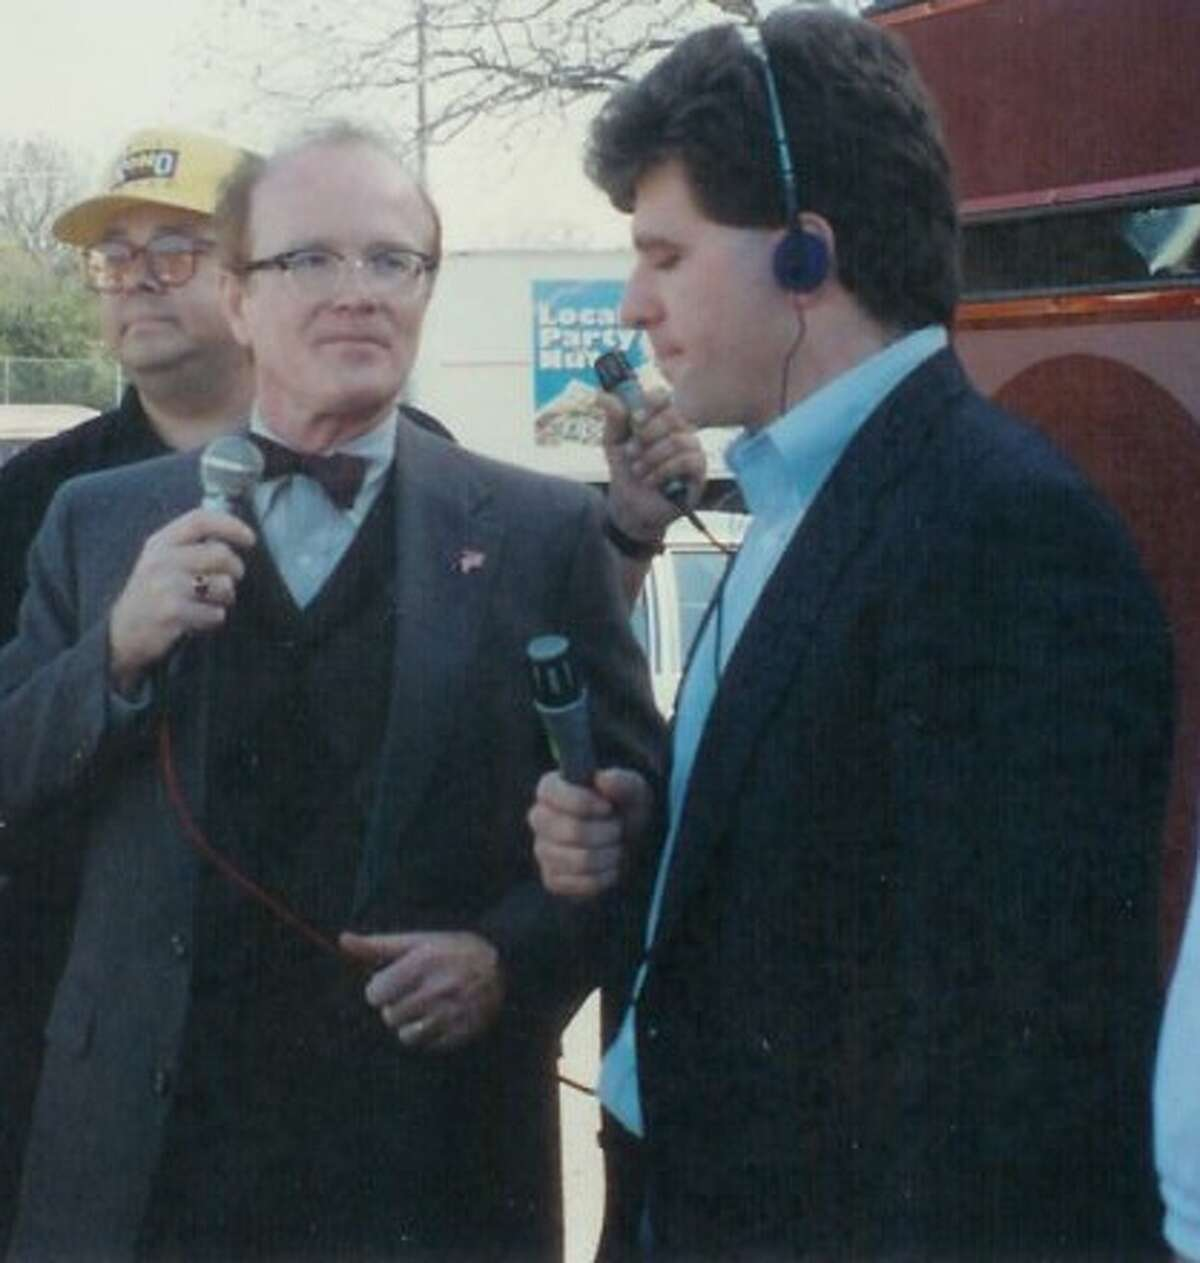 In his music radio days, Trey Ware did a live shot for the old Star-FM with Richard Sanders, aka Less Nessman of 'WKRP in Cincinnati.'